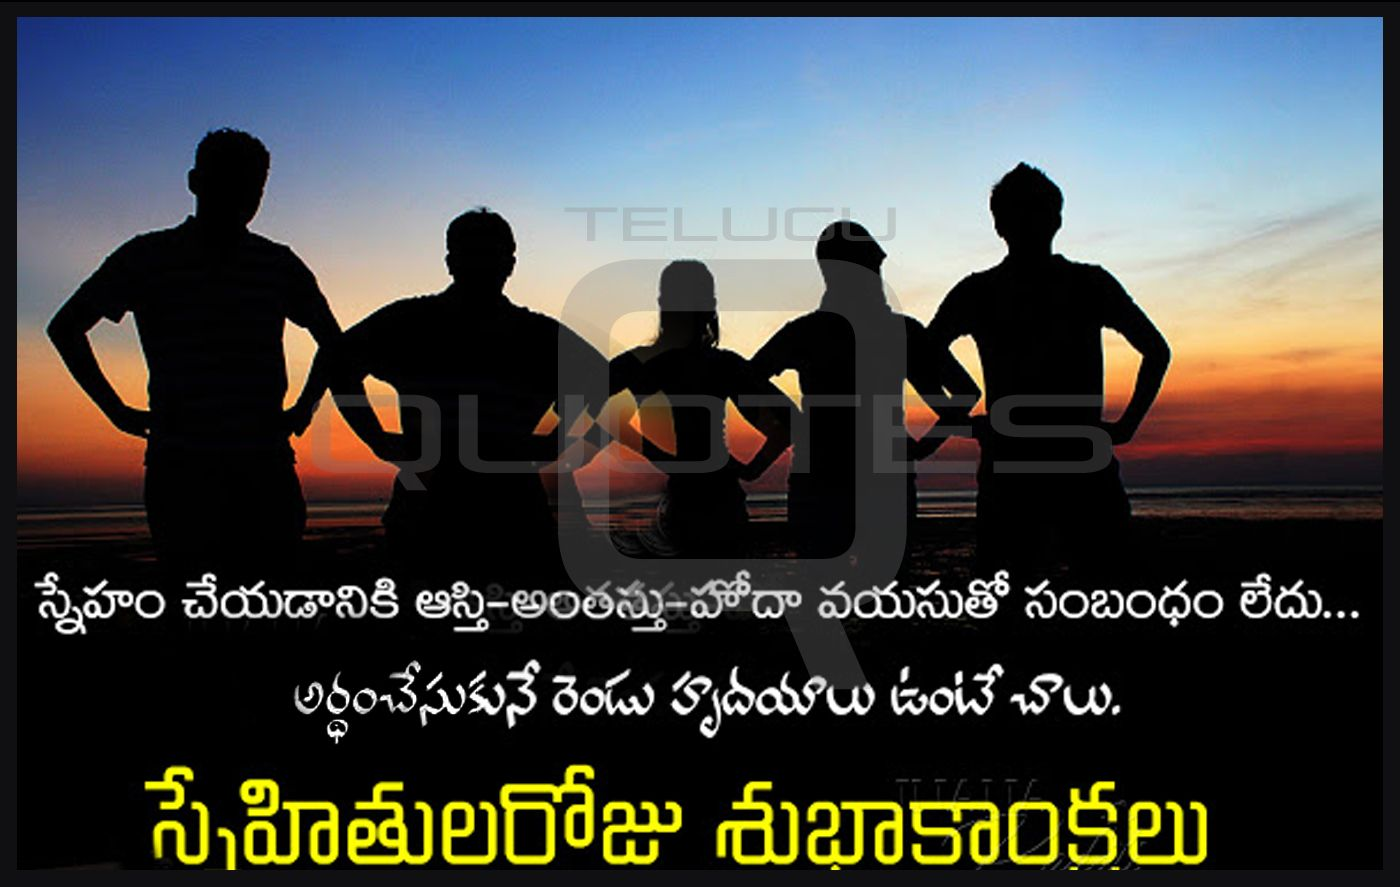 Famous Happy Friendship Day Quotes Wishes In Telugu Friendship Quotes In Telugu T Friendship Day Quotes Friendship Quotes In Telugu Happy Friendship Day Quotes